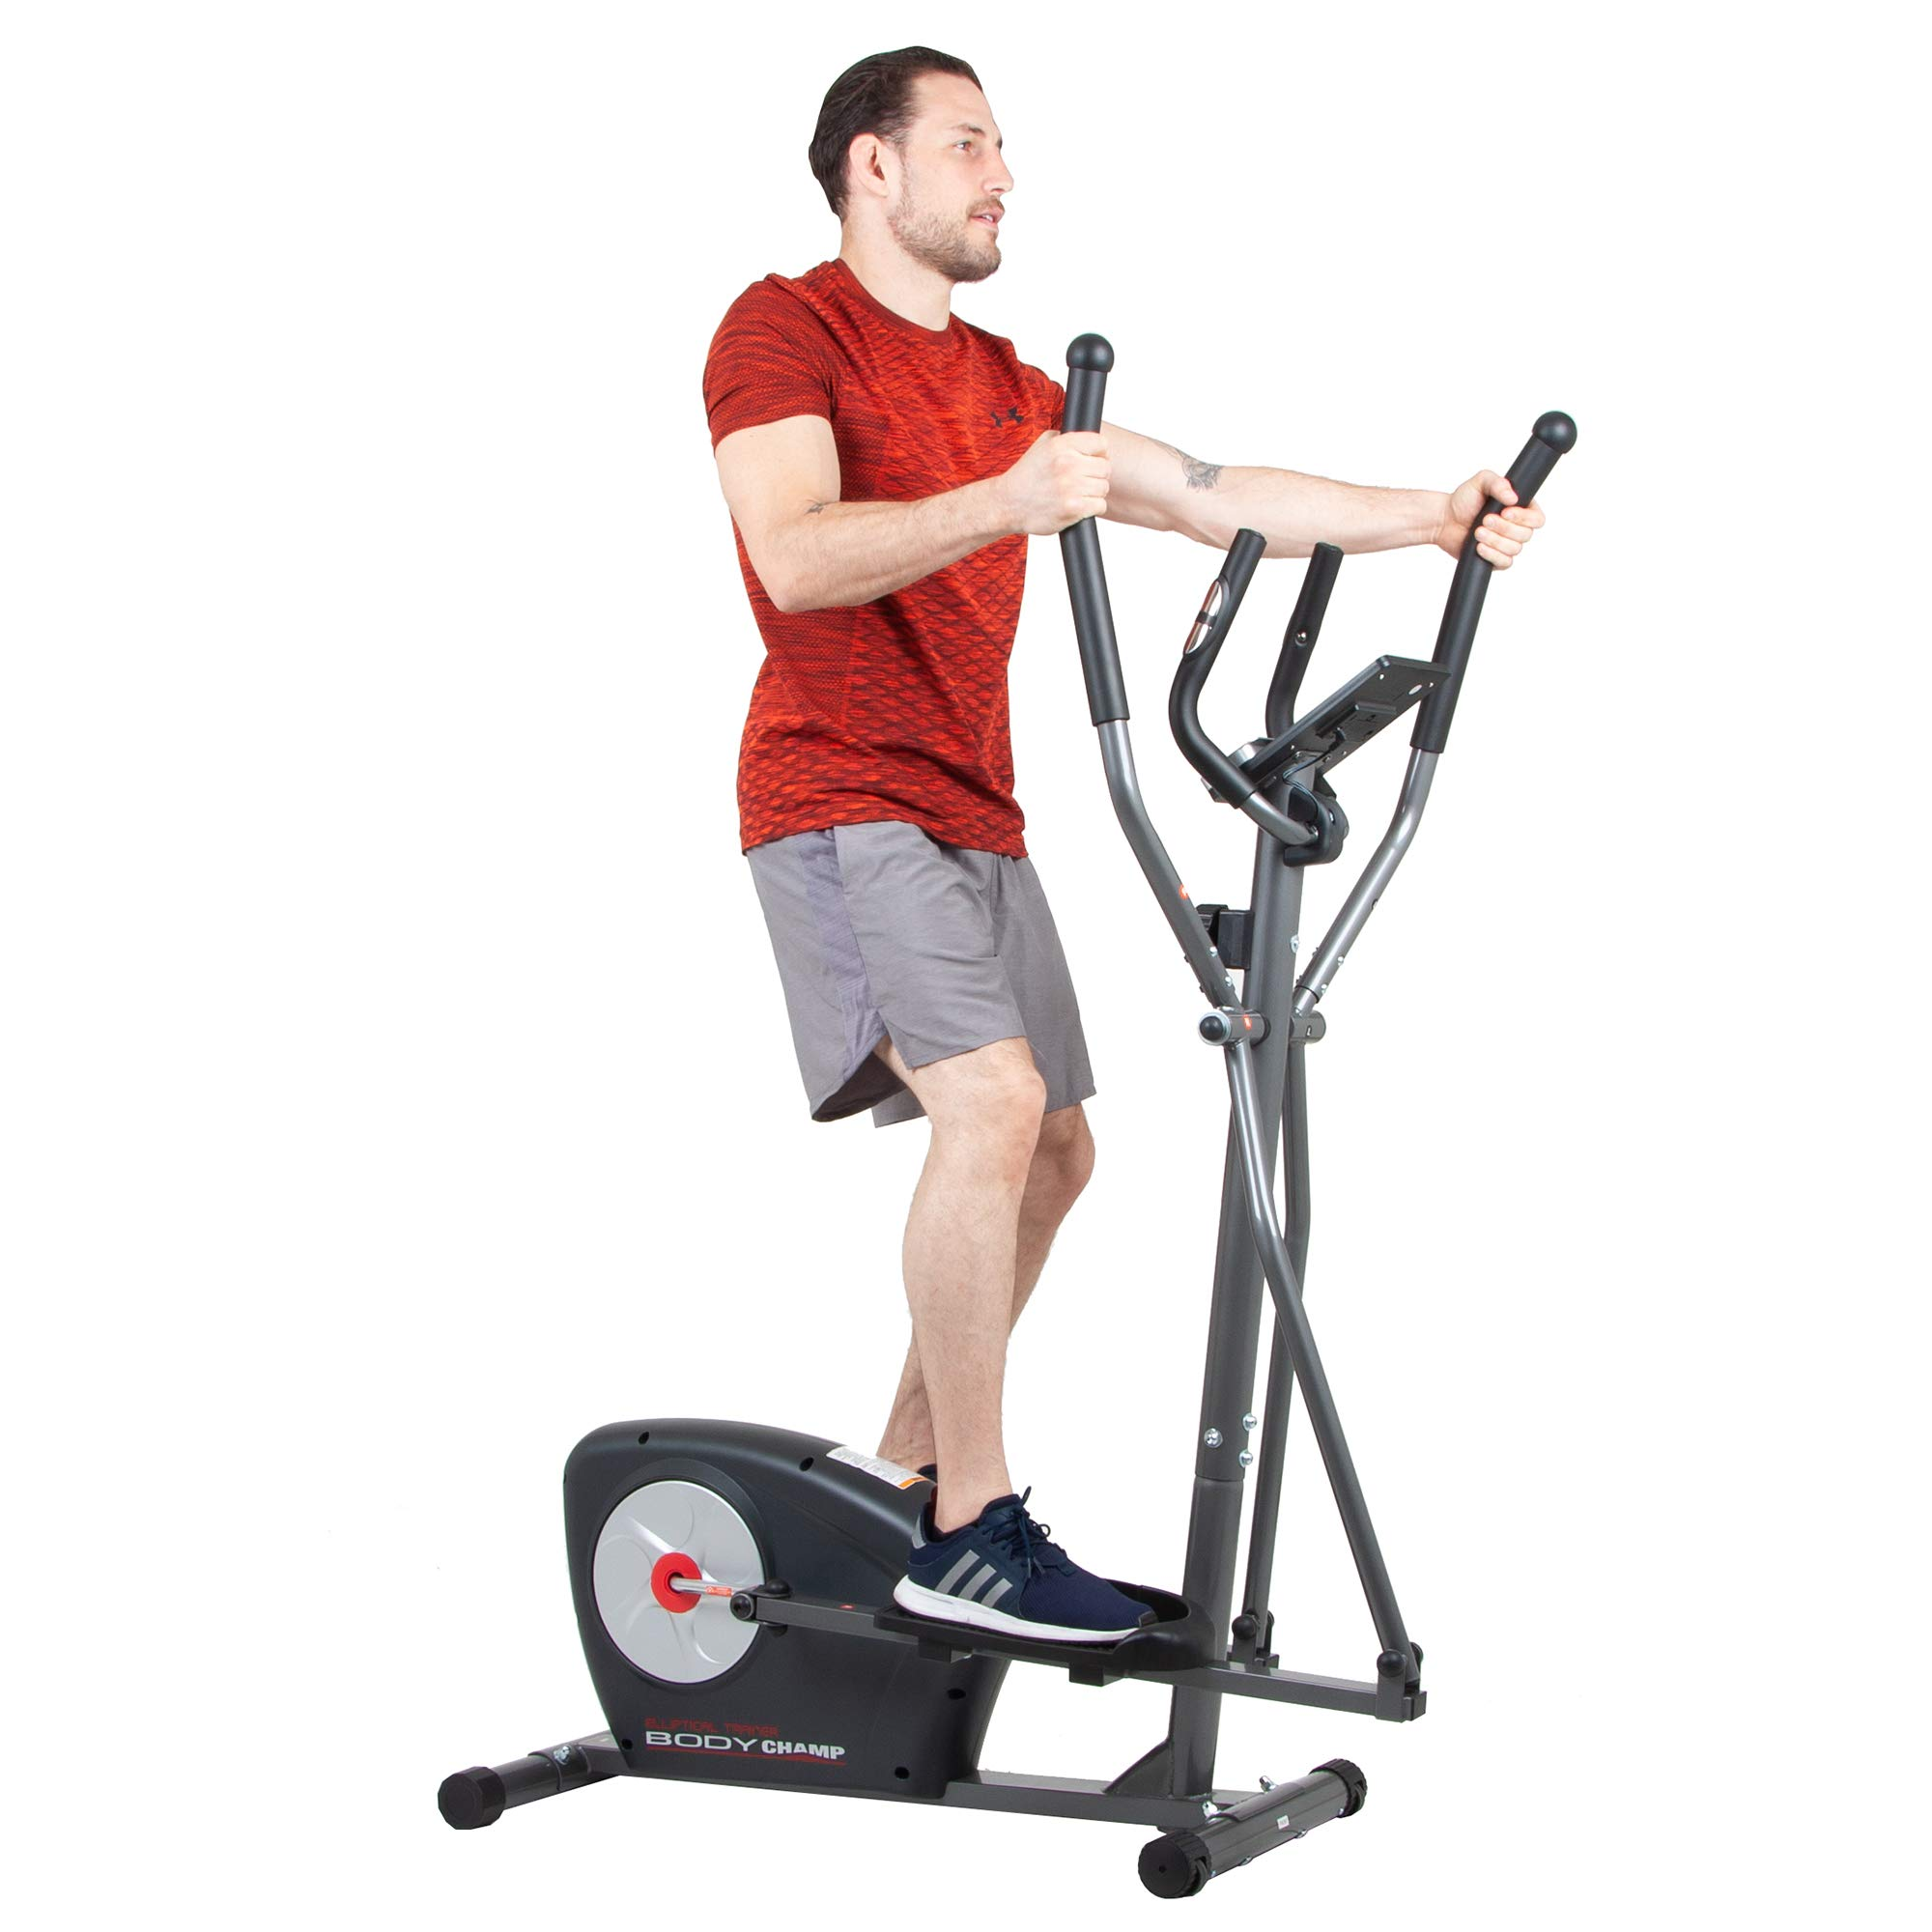 Body Champ New Elliptical Machine Trainer Magnetic Smooth Quiet Driven with LCD Media Holder Monitor and Pulse Rate Grips BR2117 by Body Champ (Image #2)